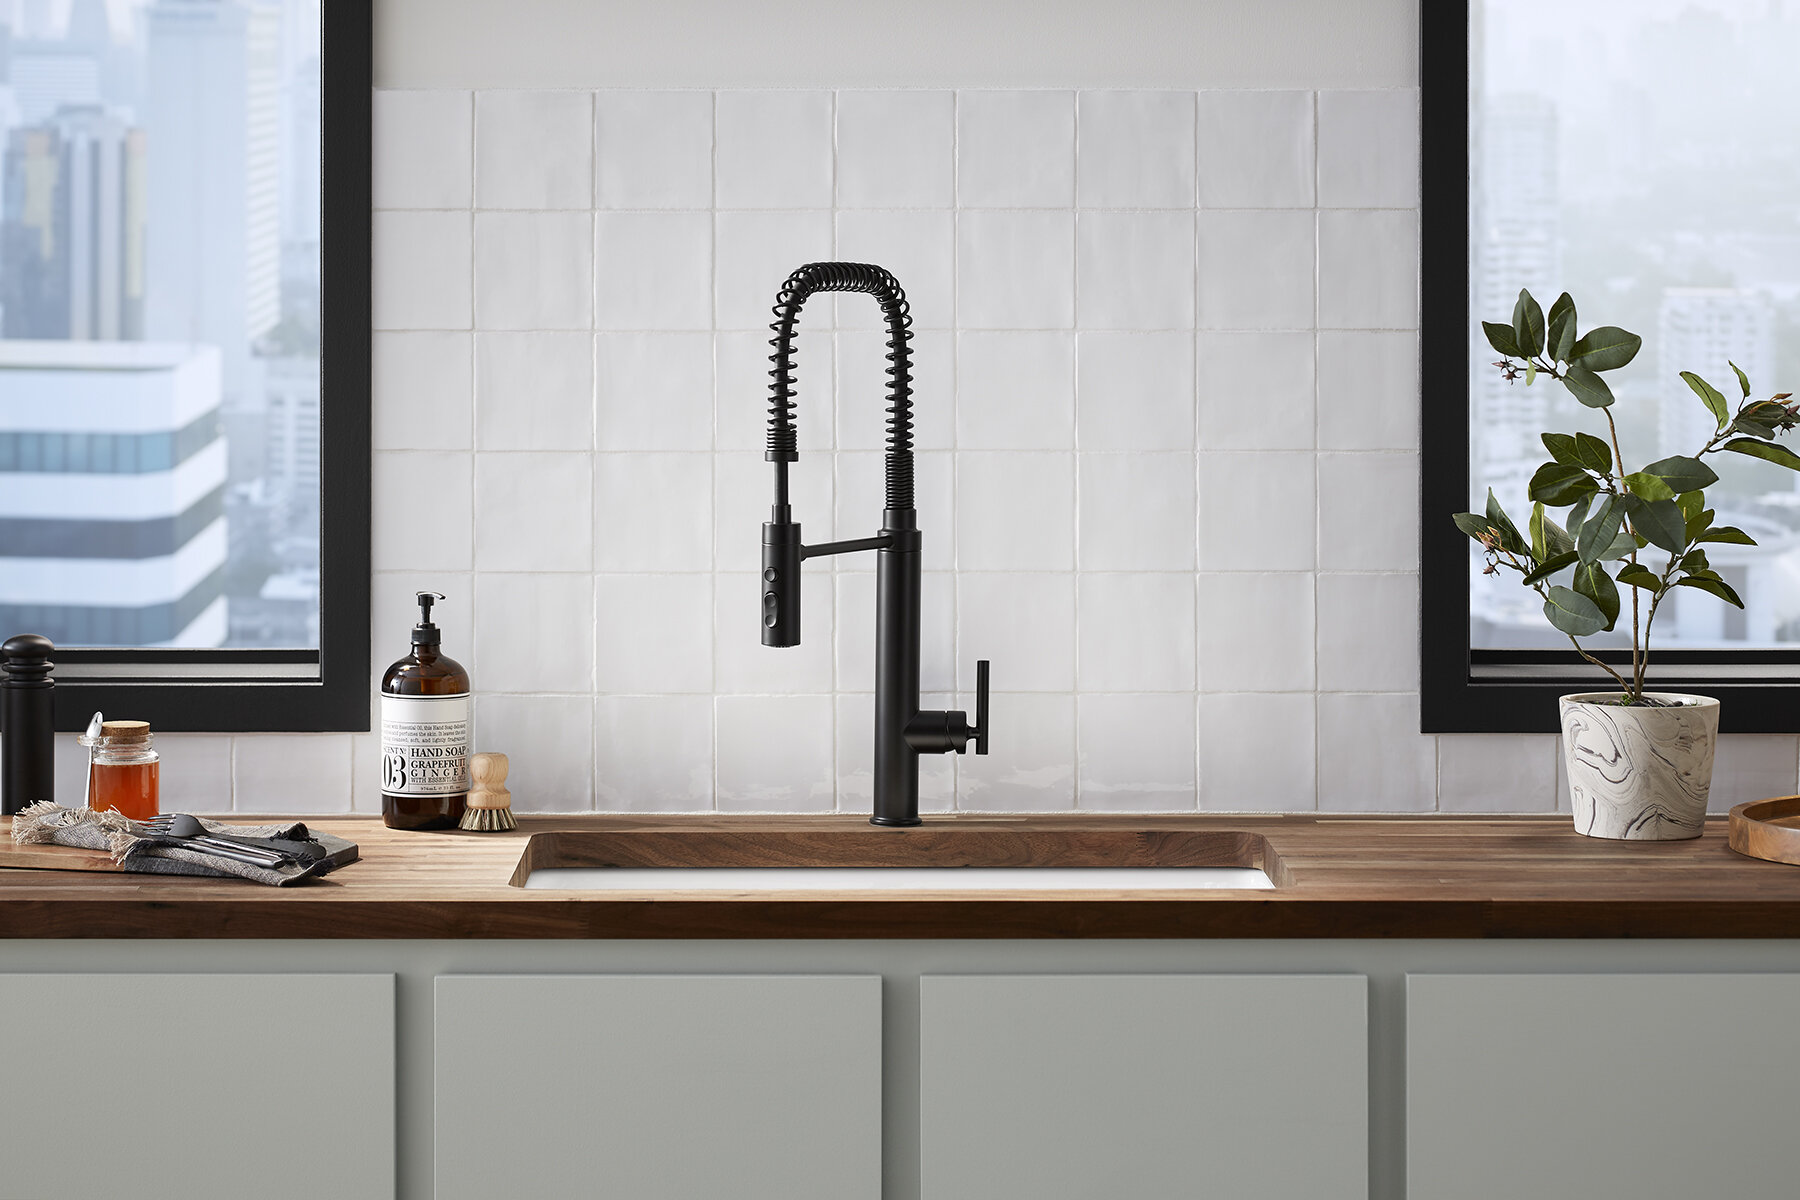 Purist Semiprofessional Kitchen Sink Faucet